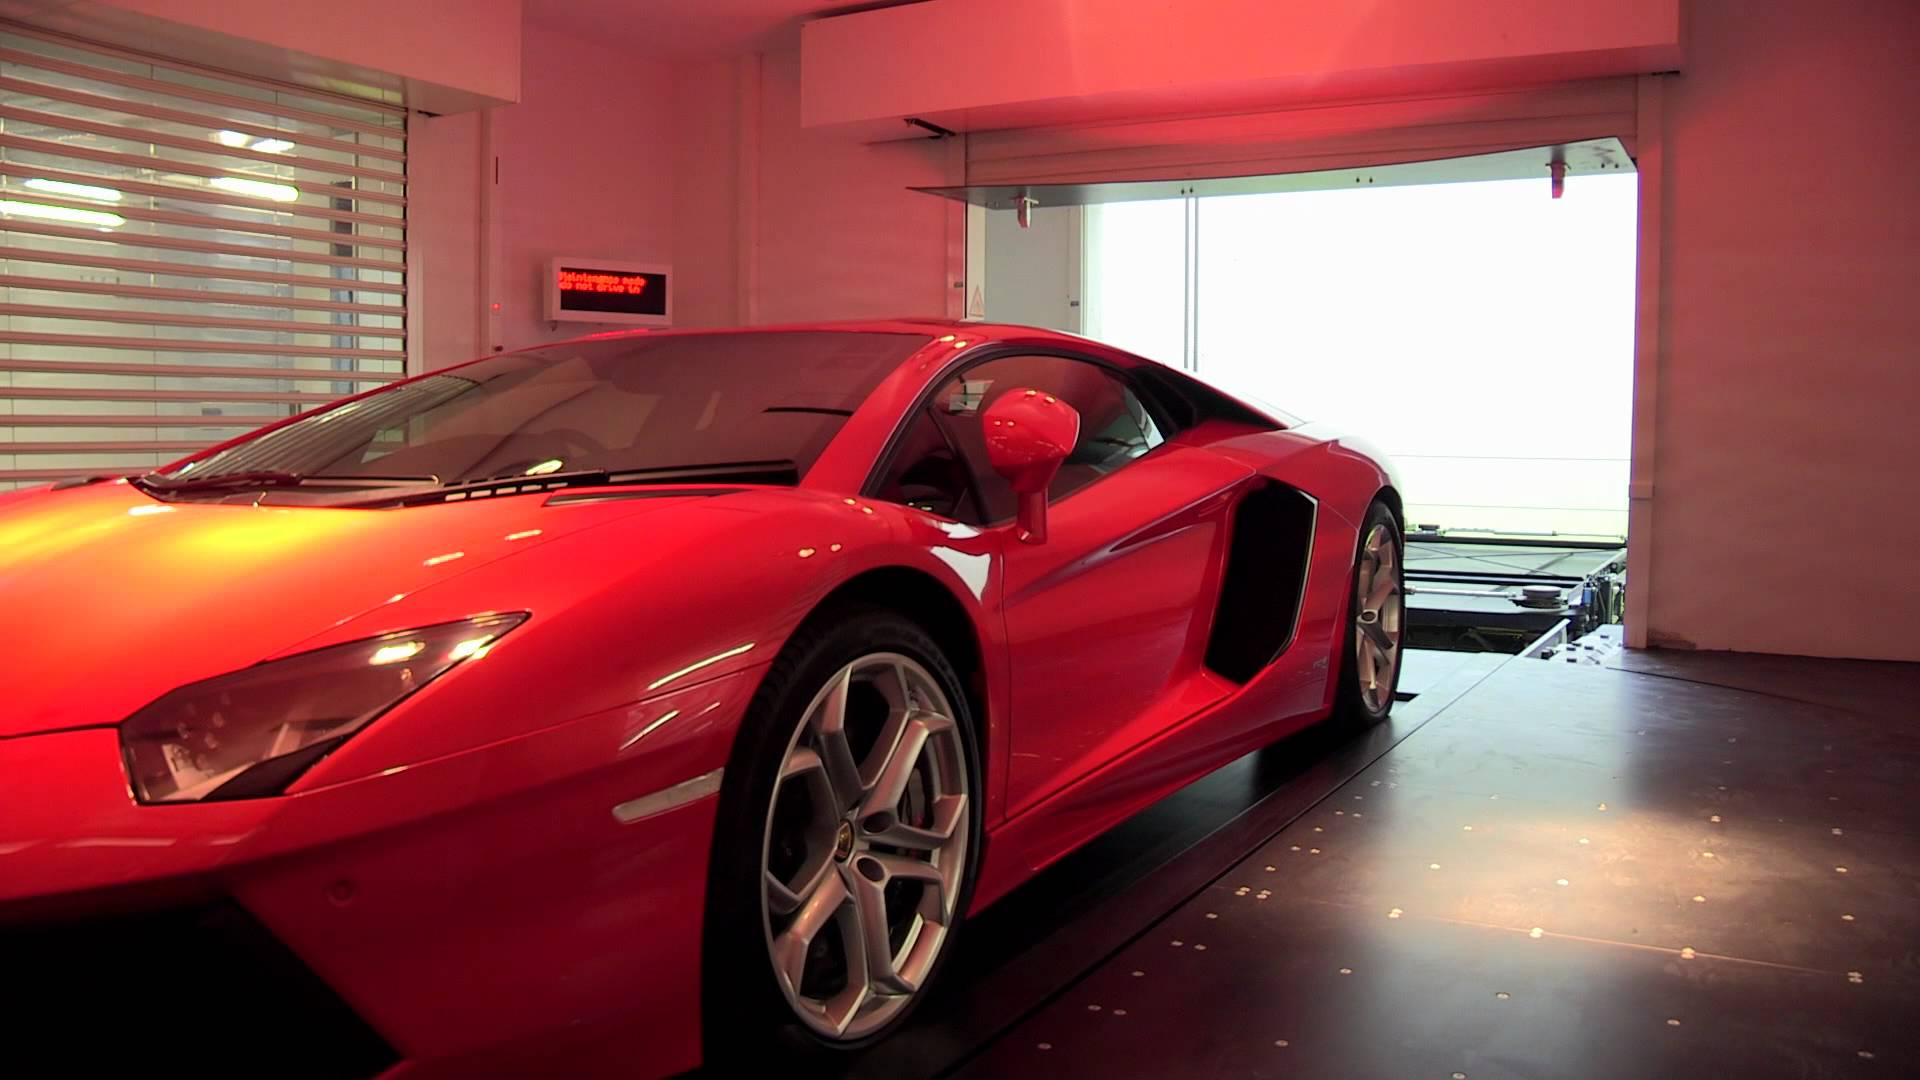 This Jaw Dropping Massive Car Garage Is Filled With Tons of Super ...